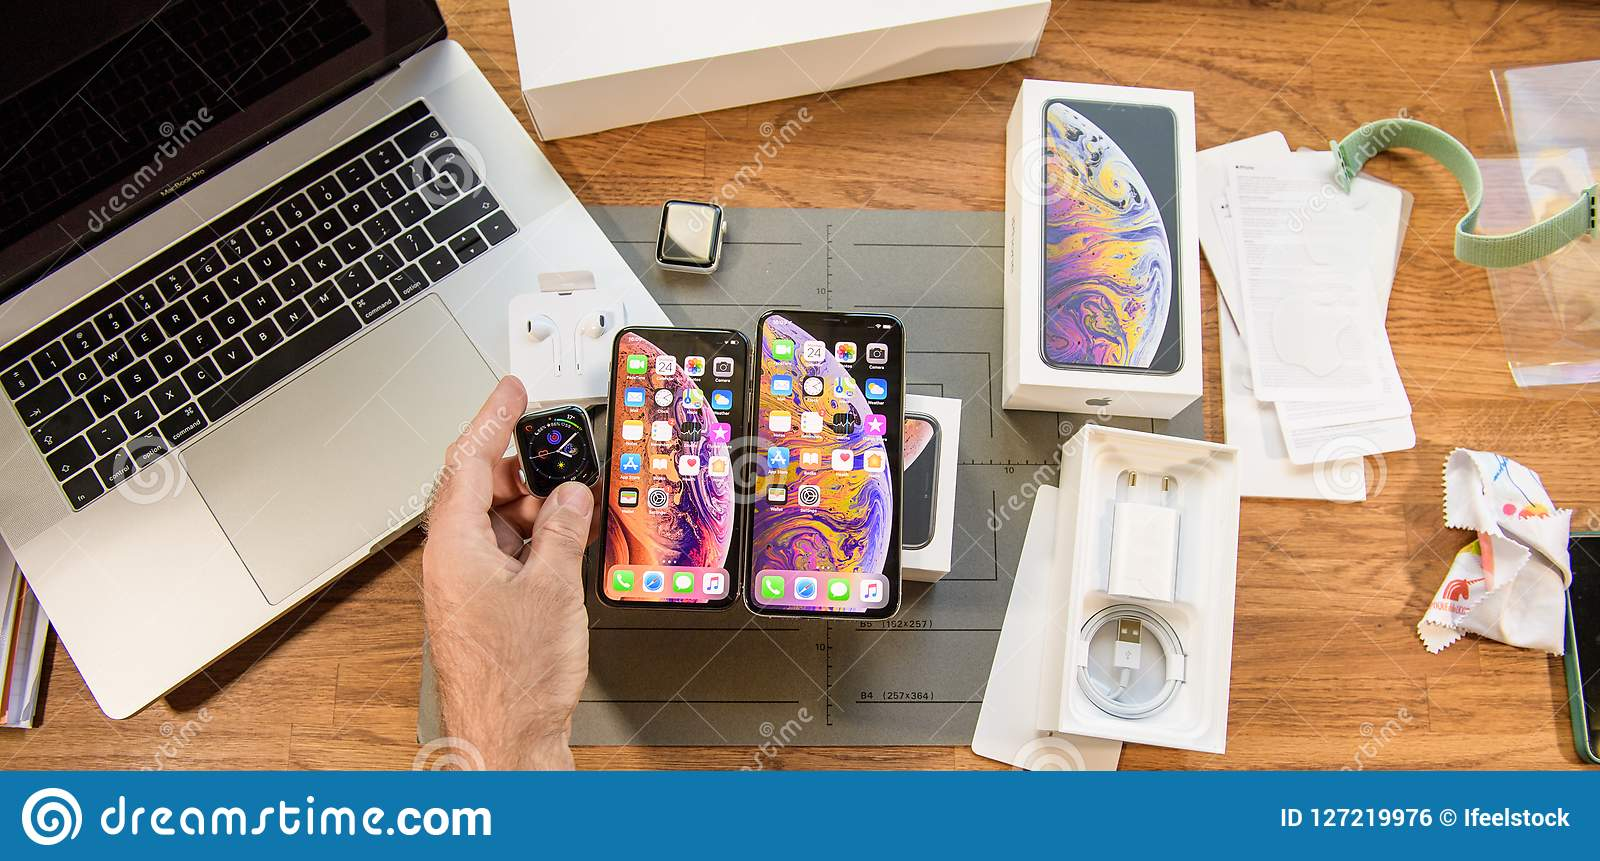 New iphone Xs max smartphone and Apple Watch Series 4